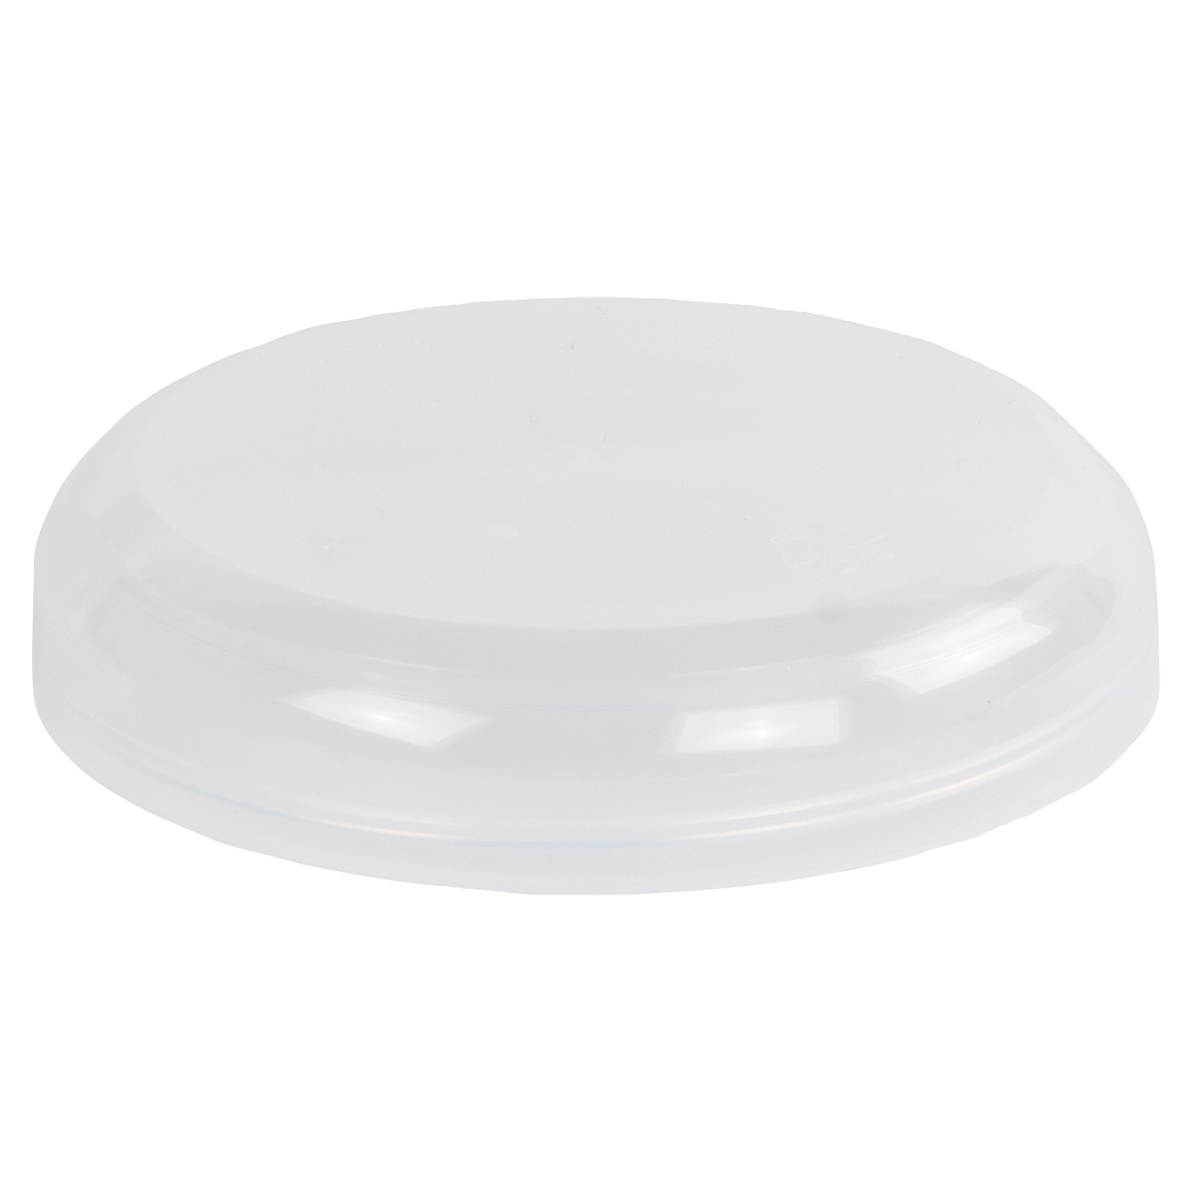 89/400 Natural Polypropylene Dome Cap